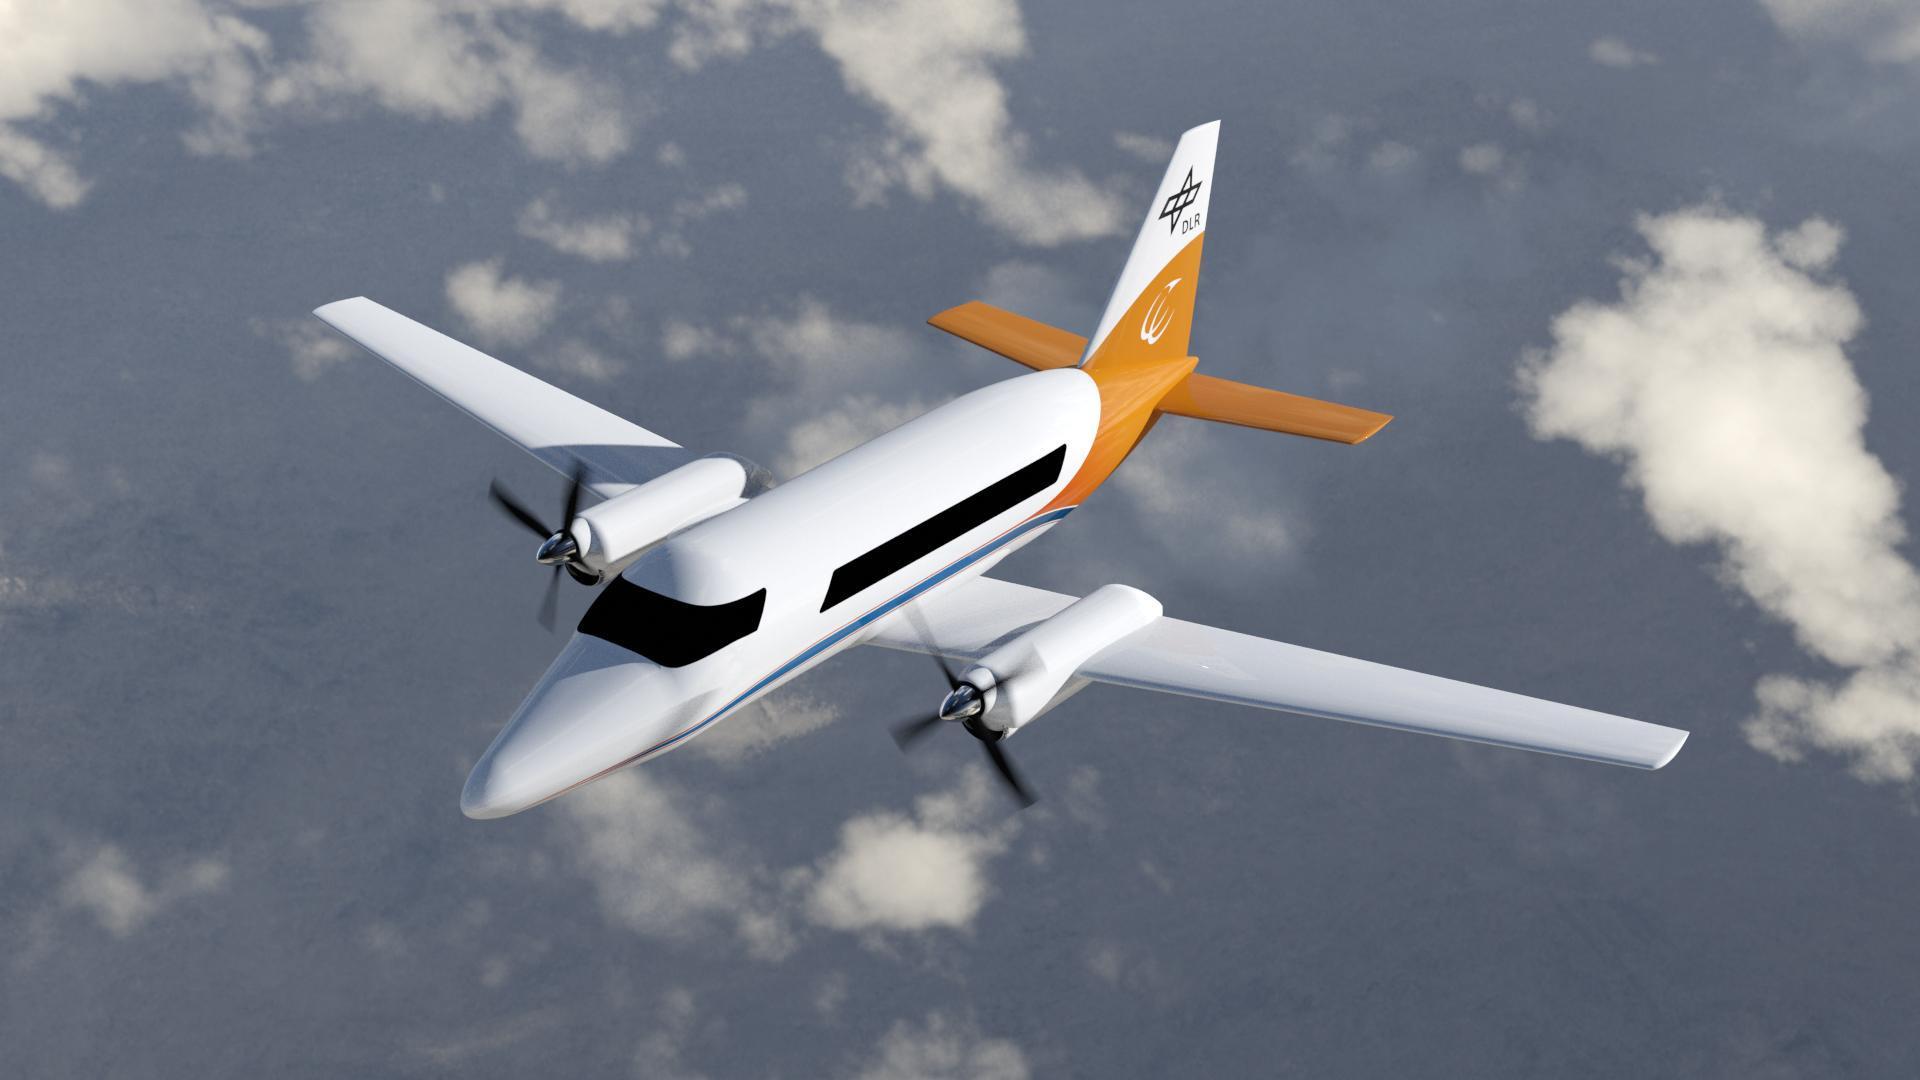 Conceptual study of a hybrid-electric 19-seater aircraft as part of the CoCoRe research project